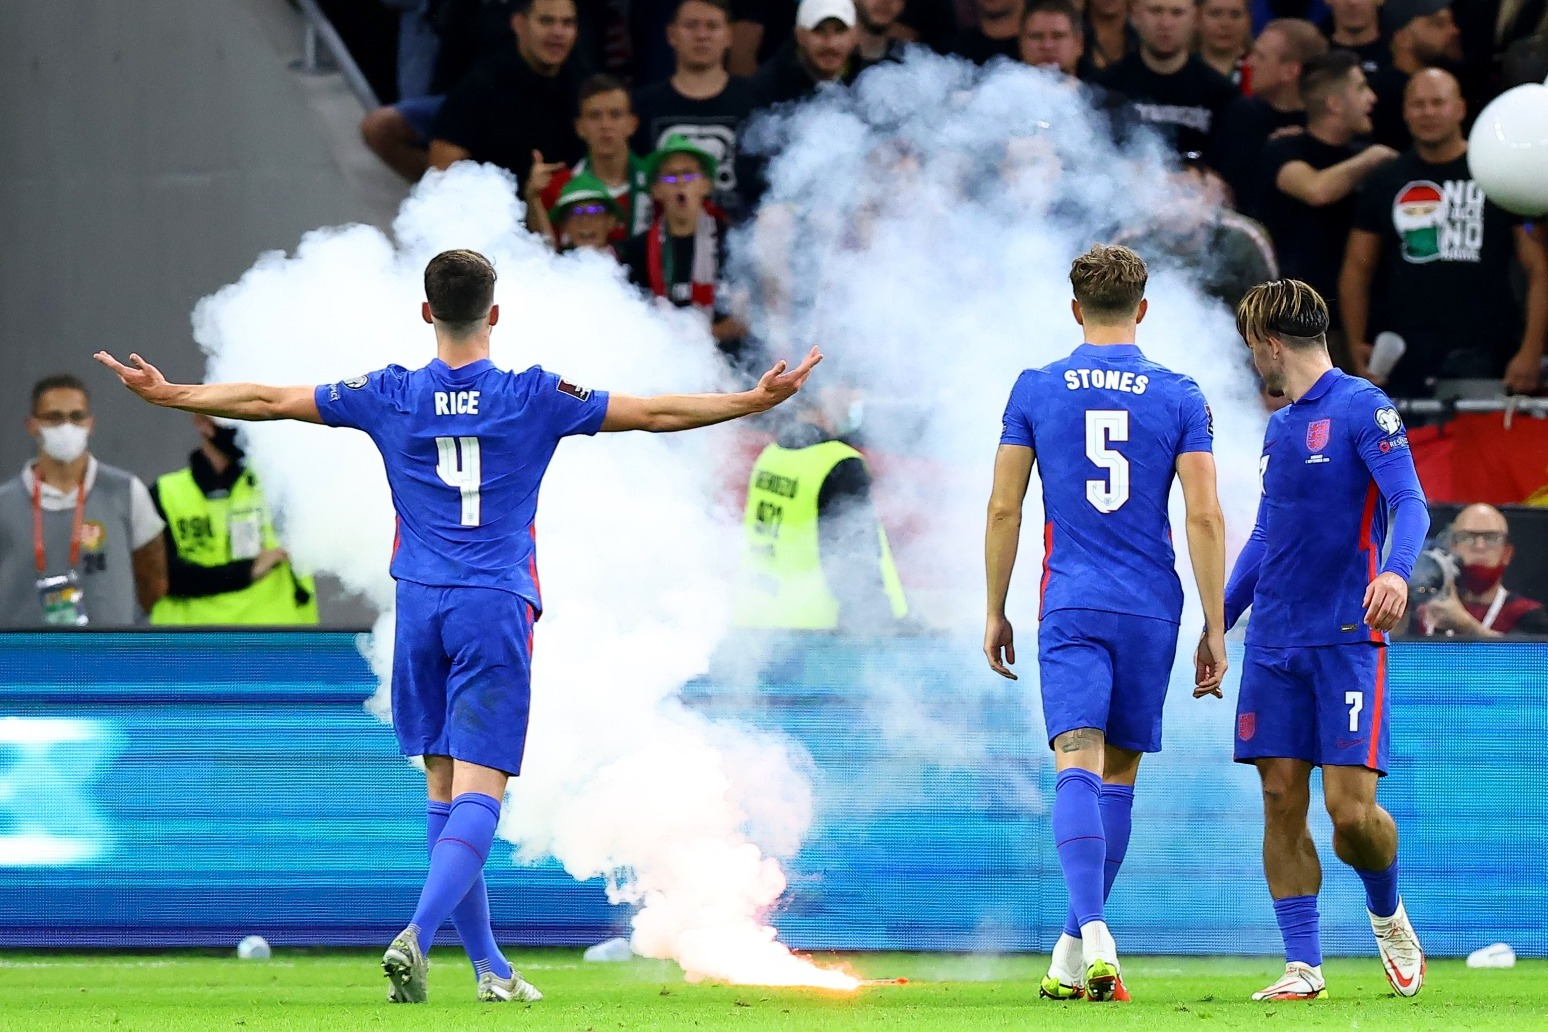 Hungary crowd's abuse of England was 'preventable and predictable' – Kick It Out